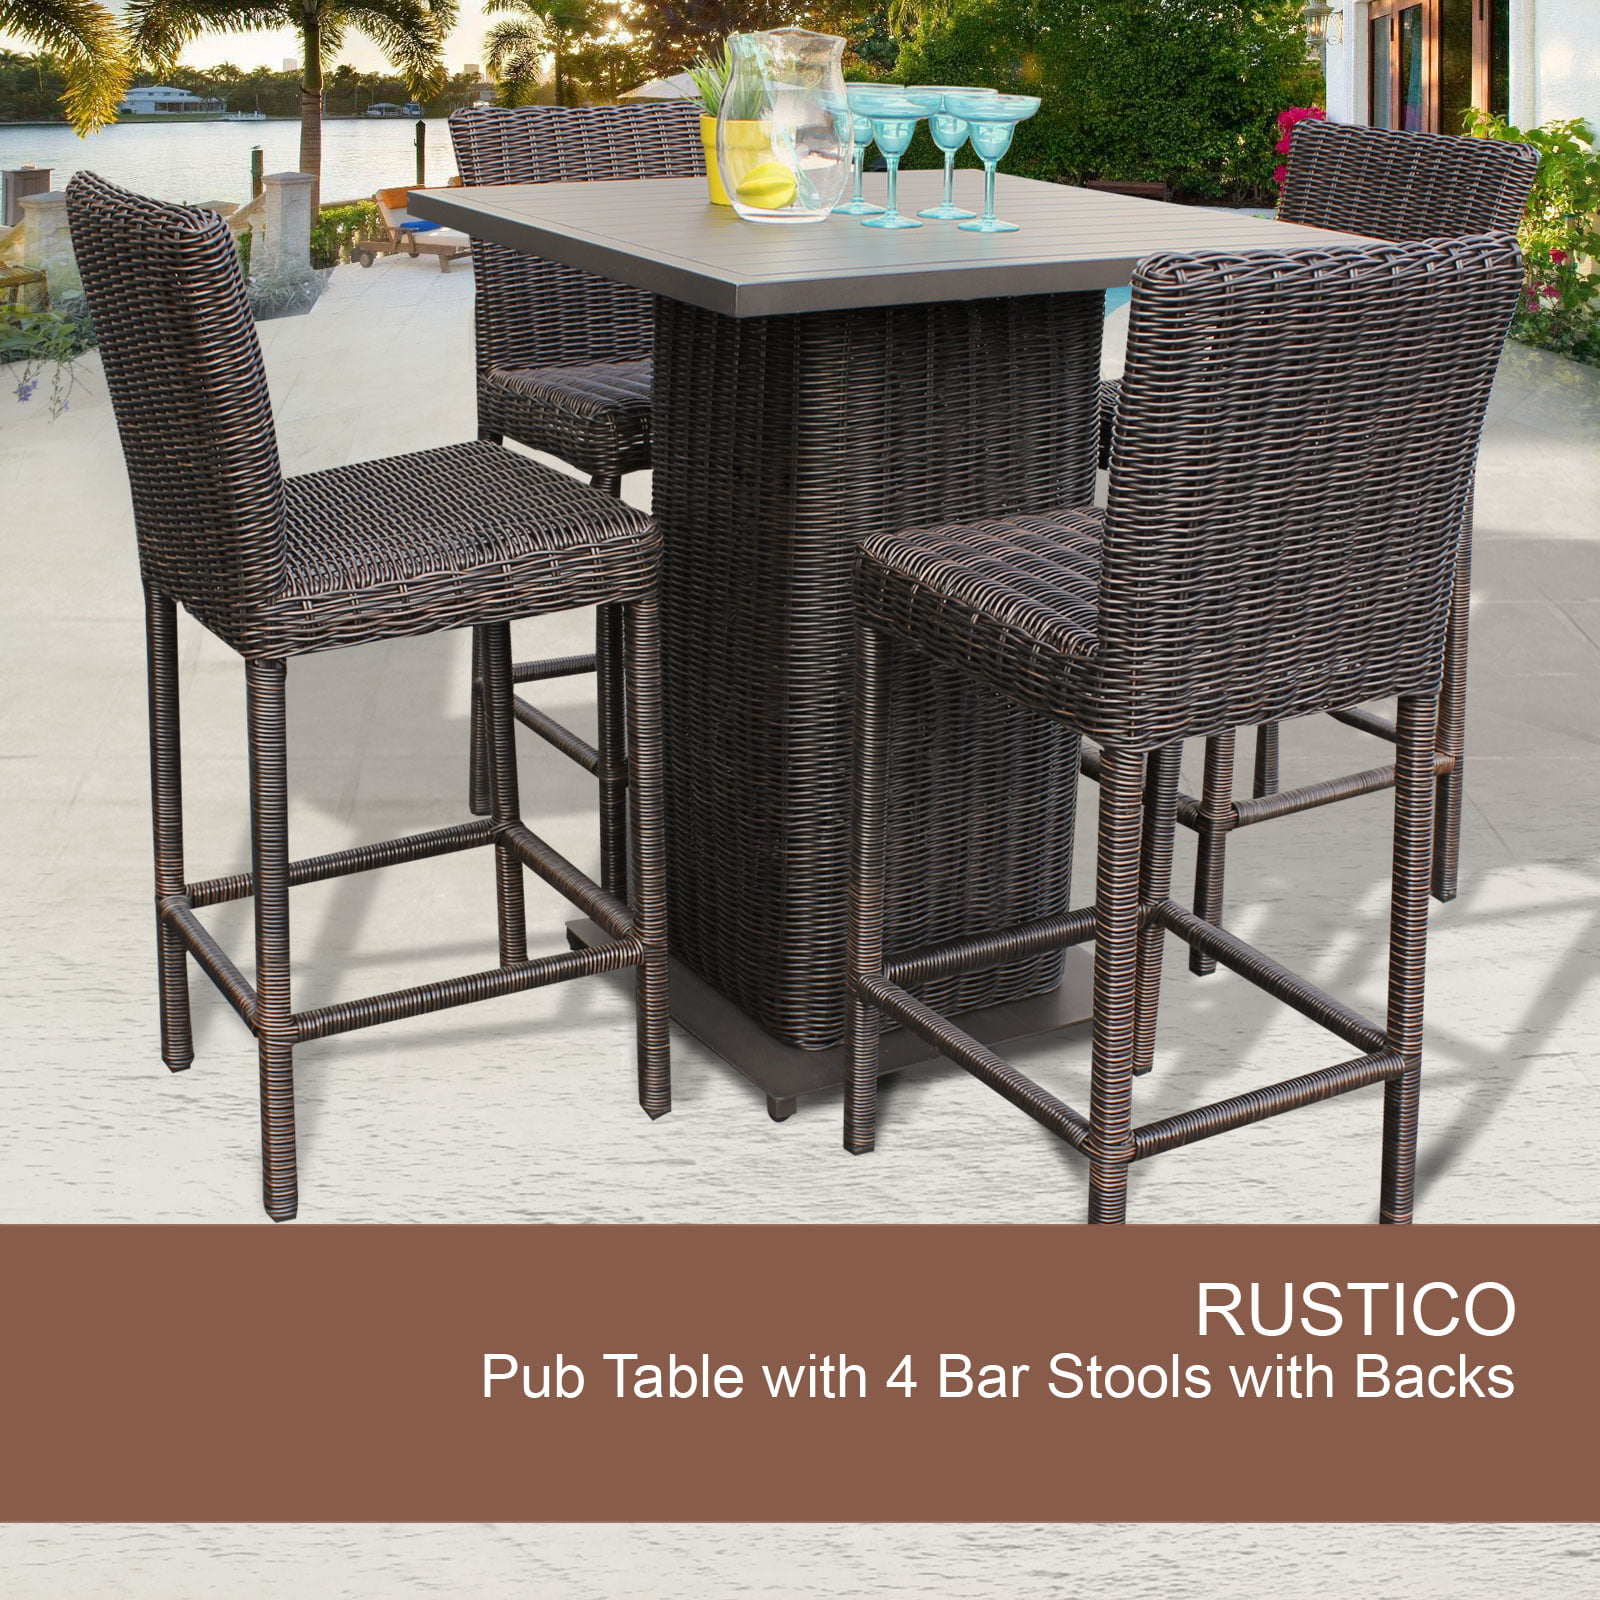 Rustico Pub Table Set With Barstools 5 Piece Outdoor Wicker Patio Furniture    Walmart.com